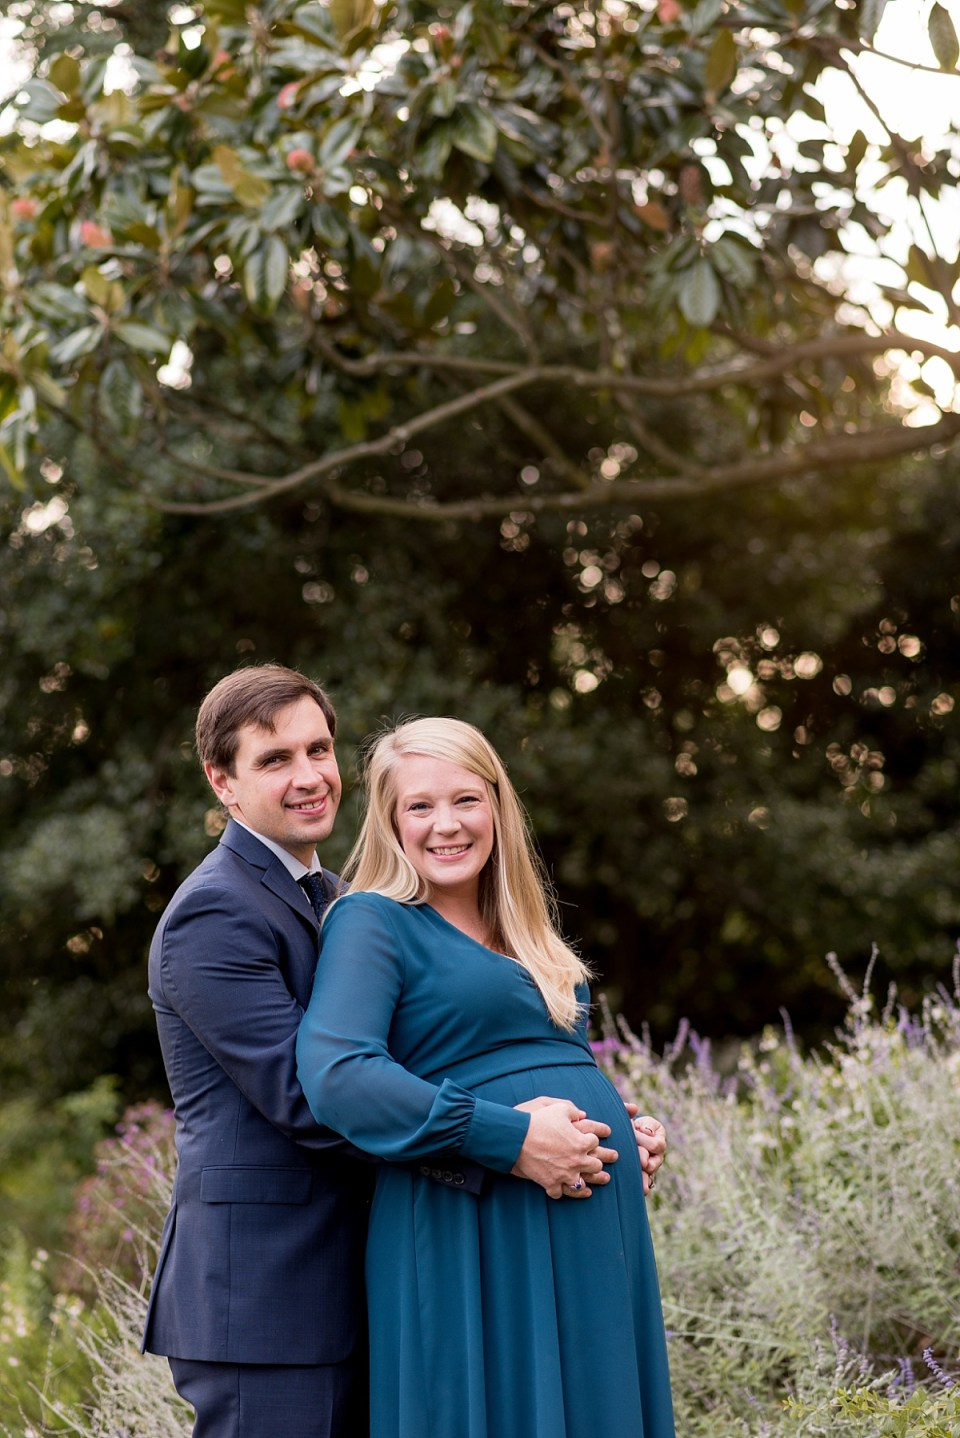 Maternity Photos at Greenspring Gardens in Alexandria by Alexandria Maternity Photographer, Erin Tetterton